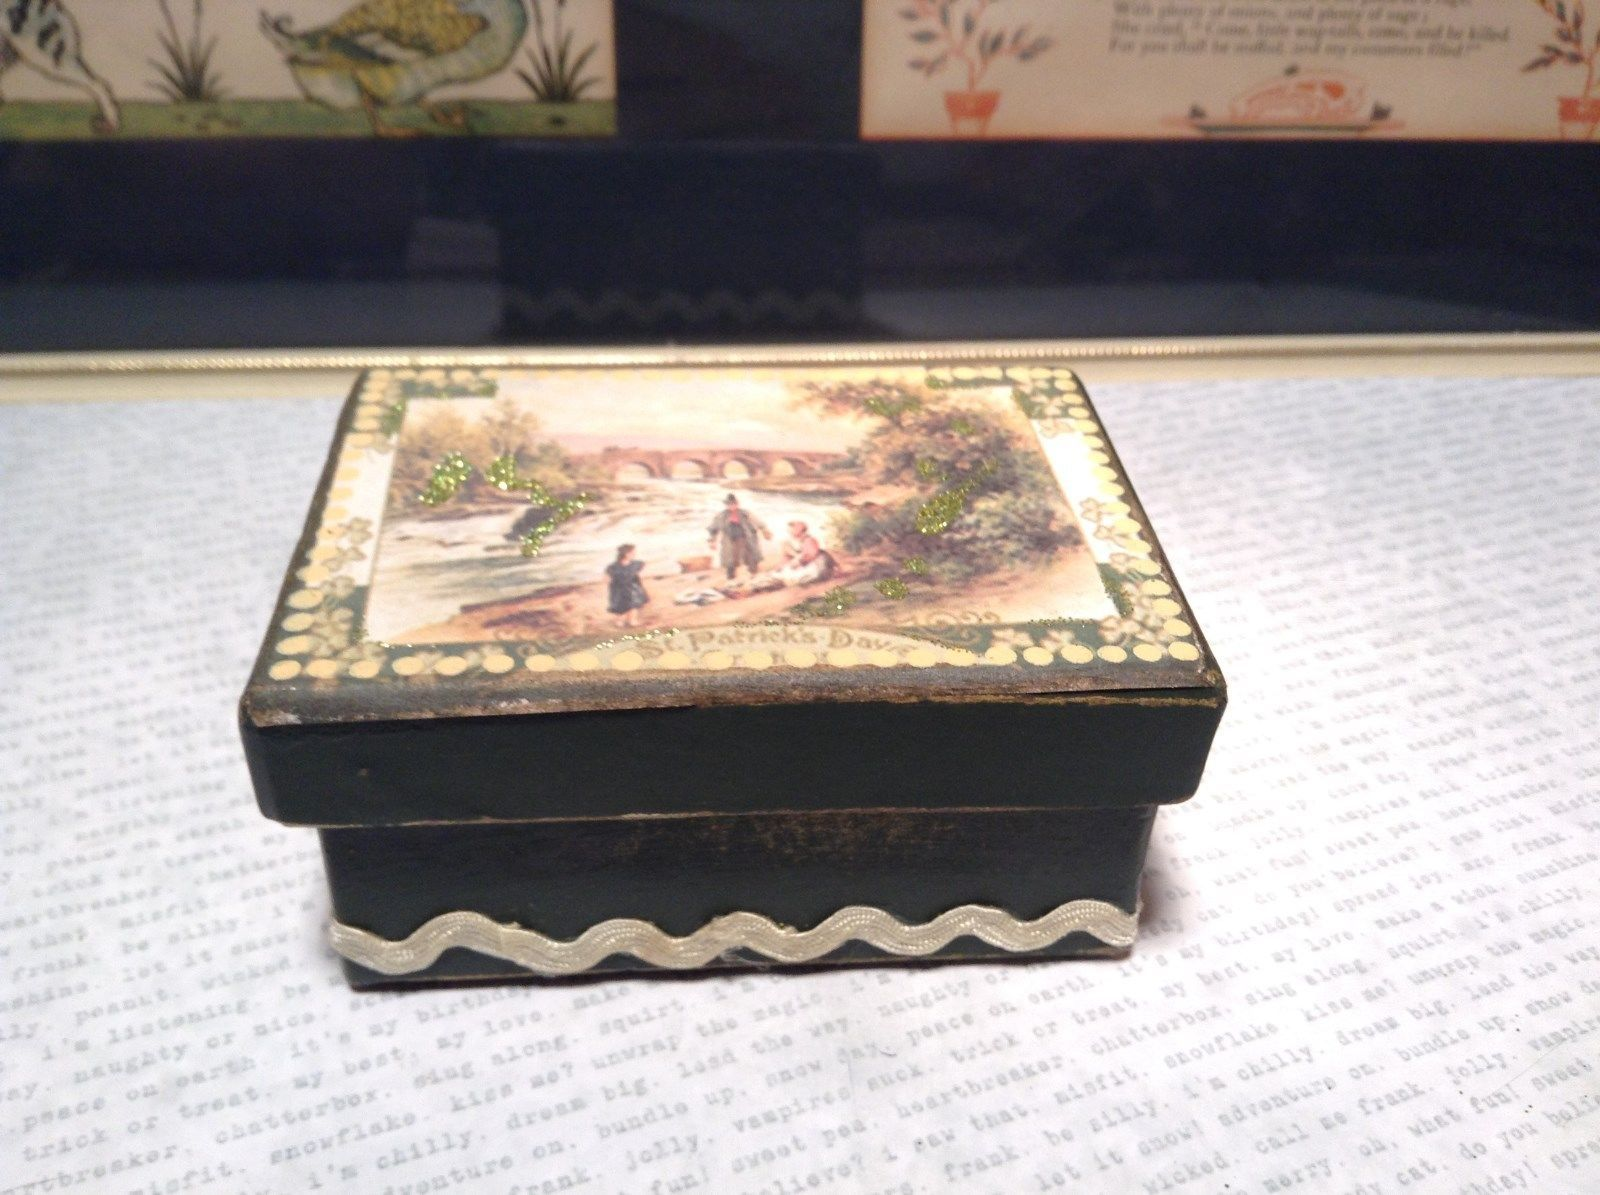 Primary image for St Patricks Day River Scene Green Heavy Duty Paperboard Trinket Box Vintage Look